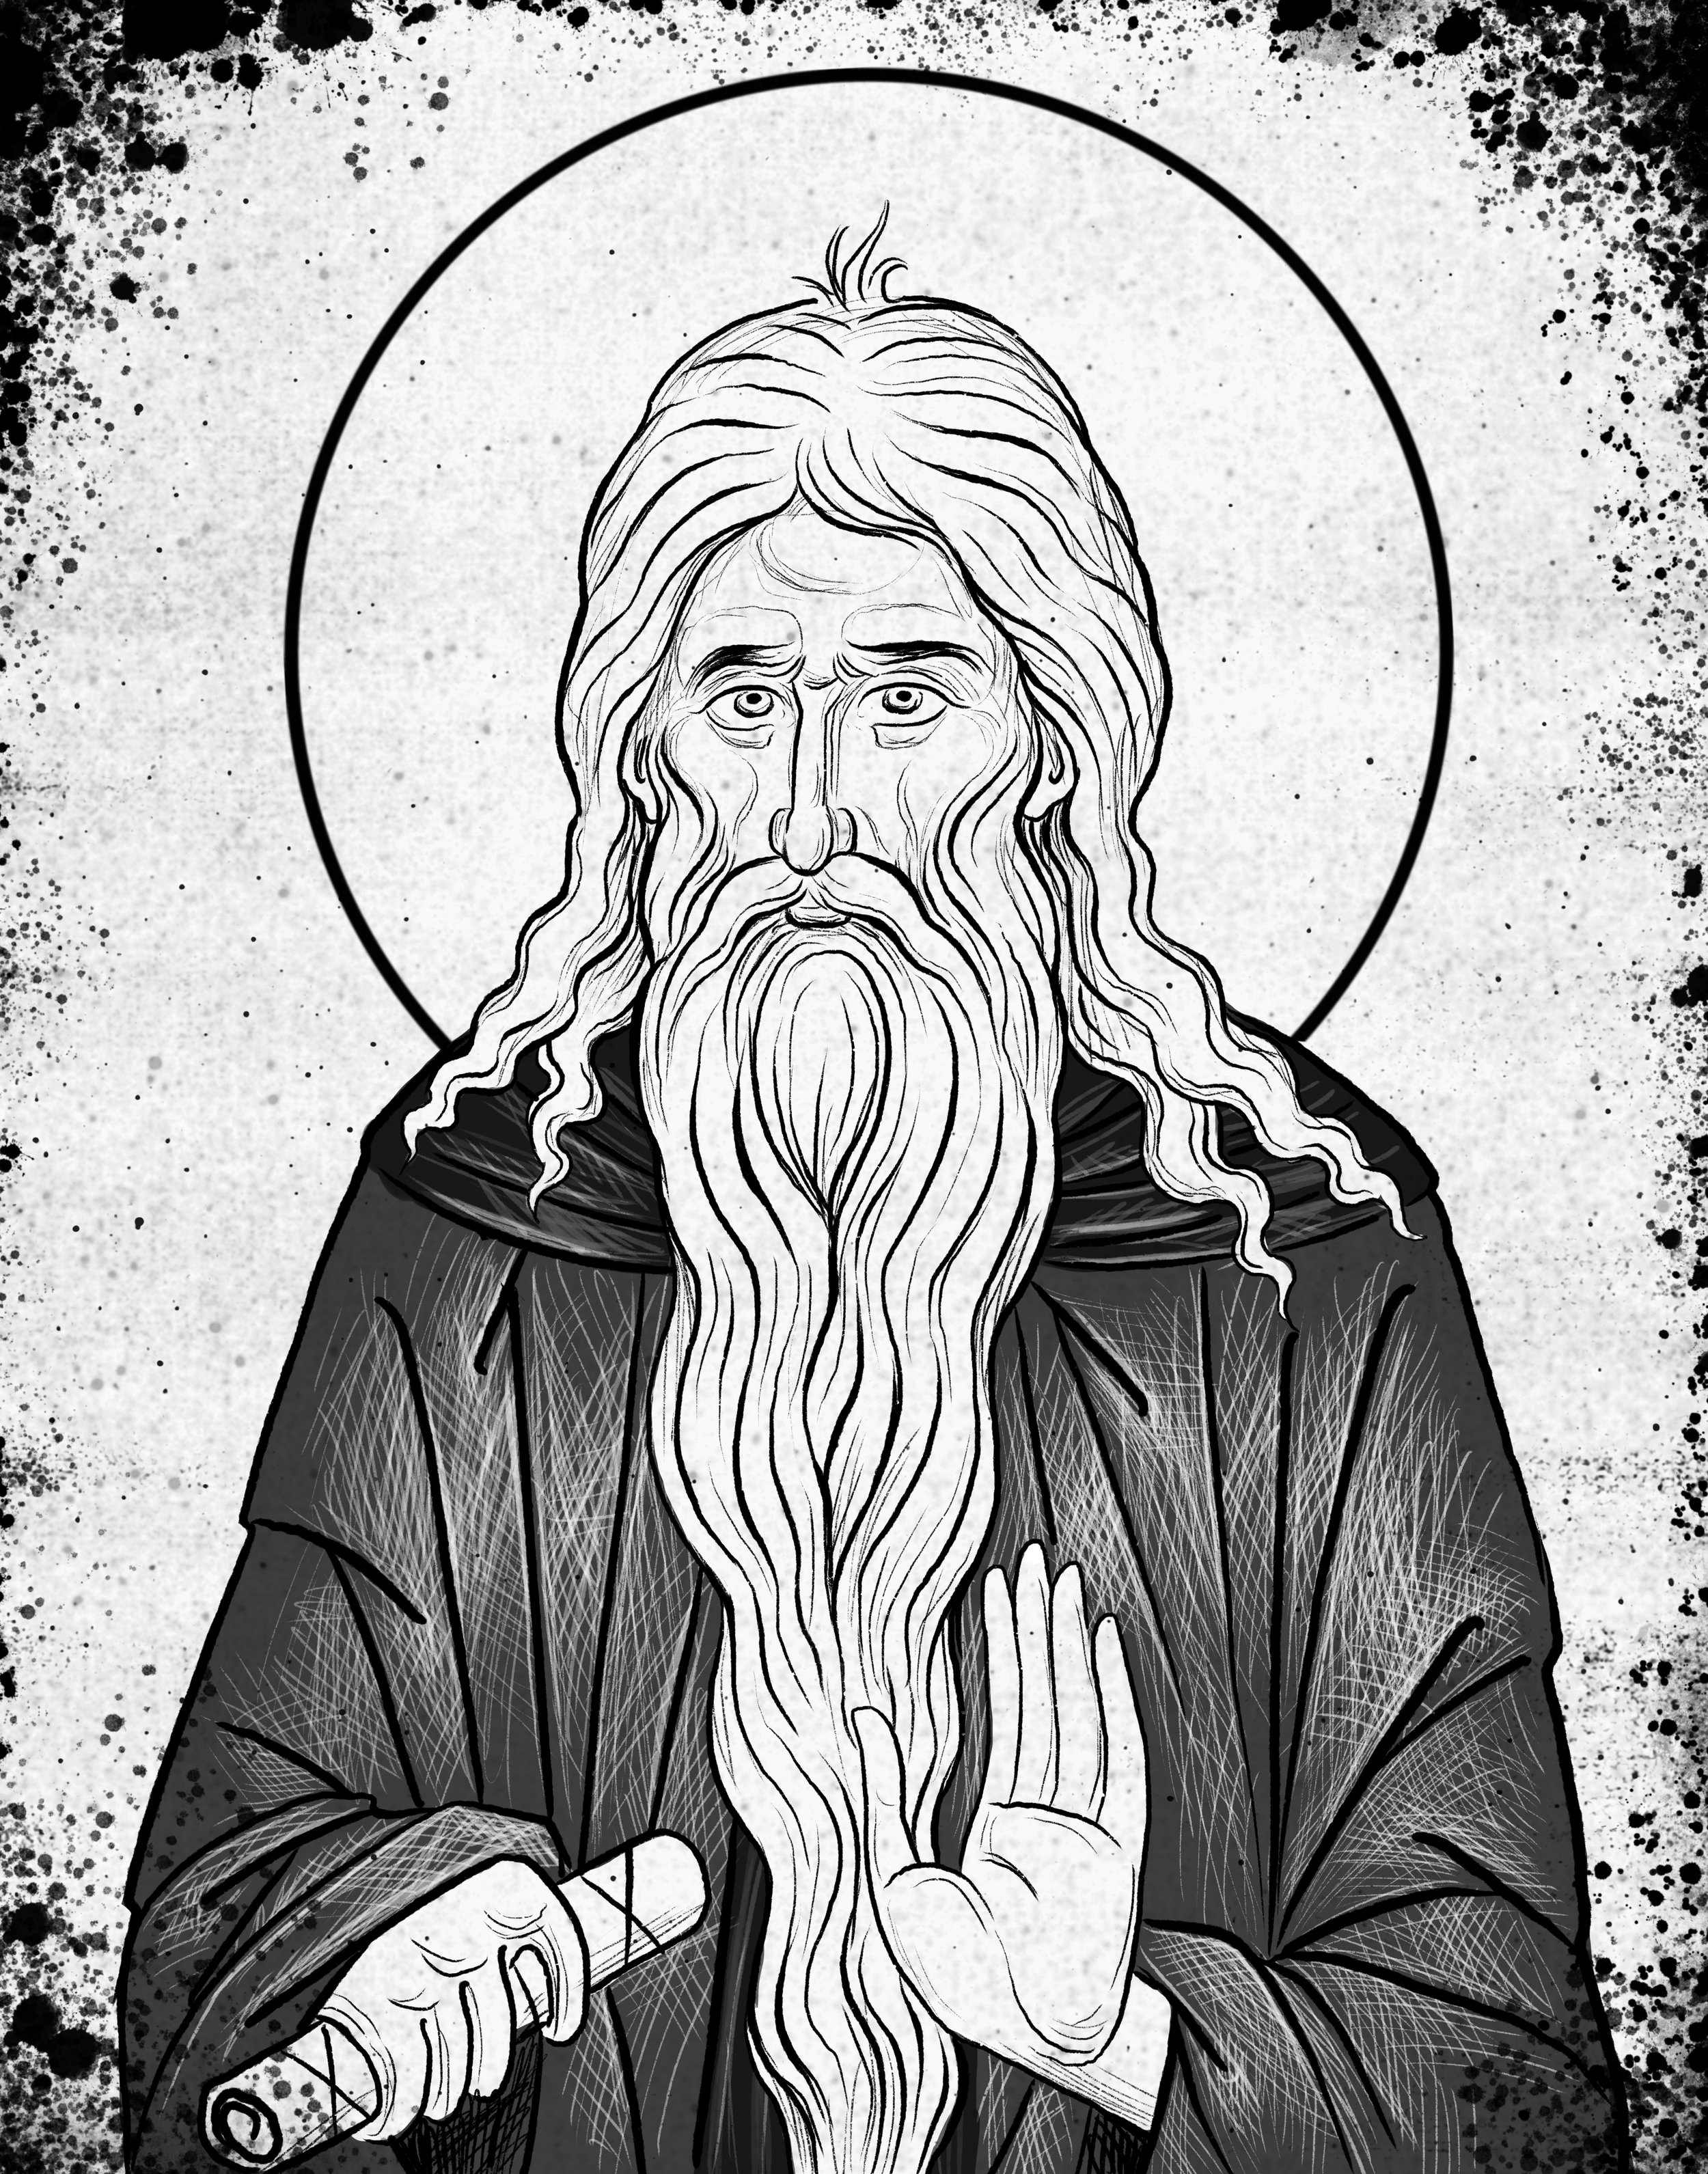 St. Macarius the Great, Egyptian ascetic